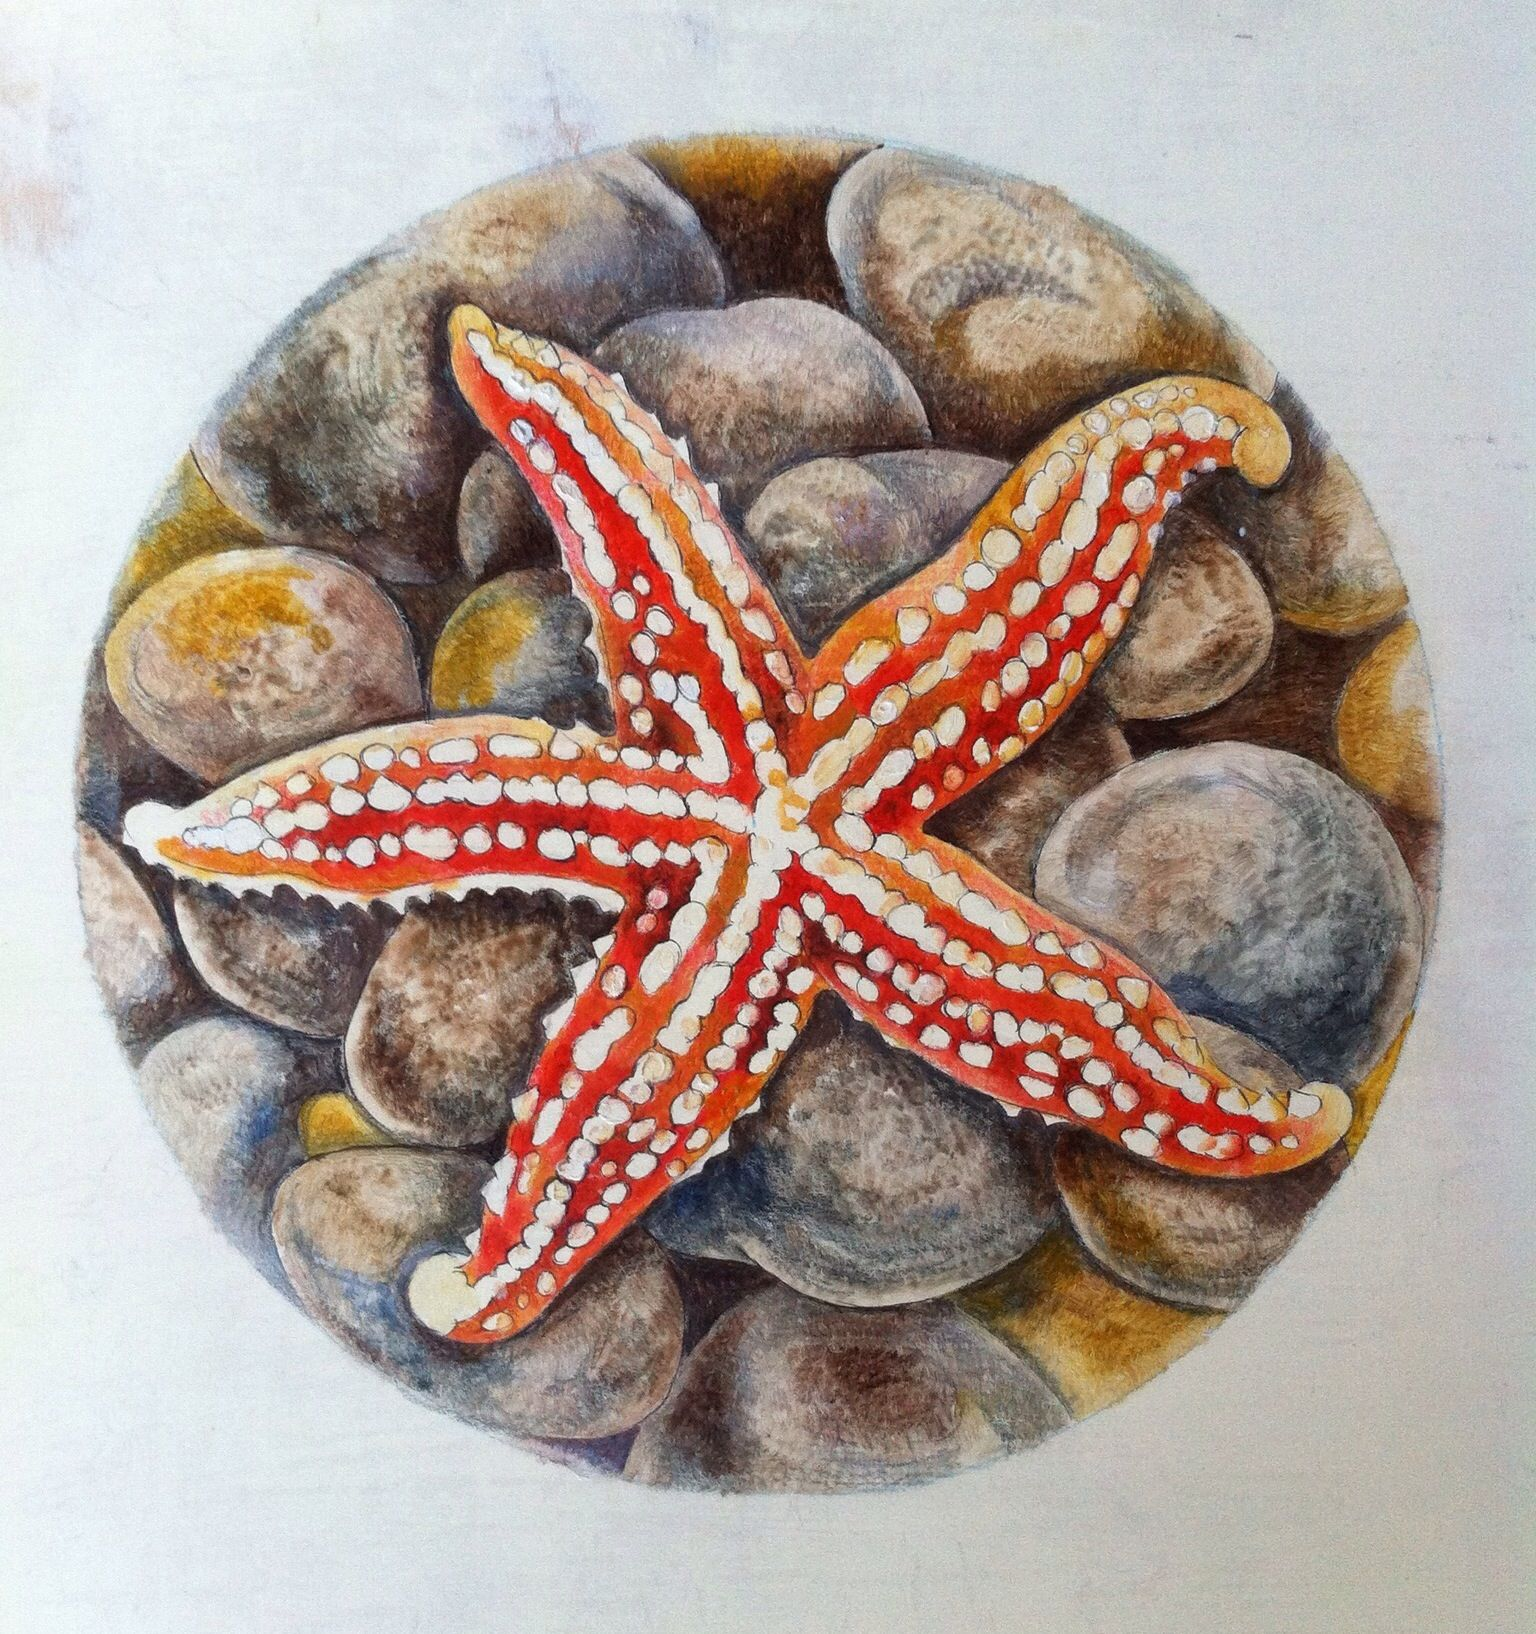 Starfish design - close-up from side of cabinet!